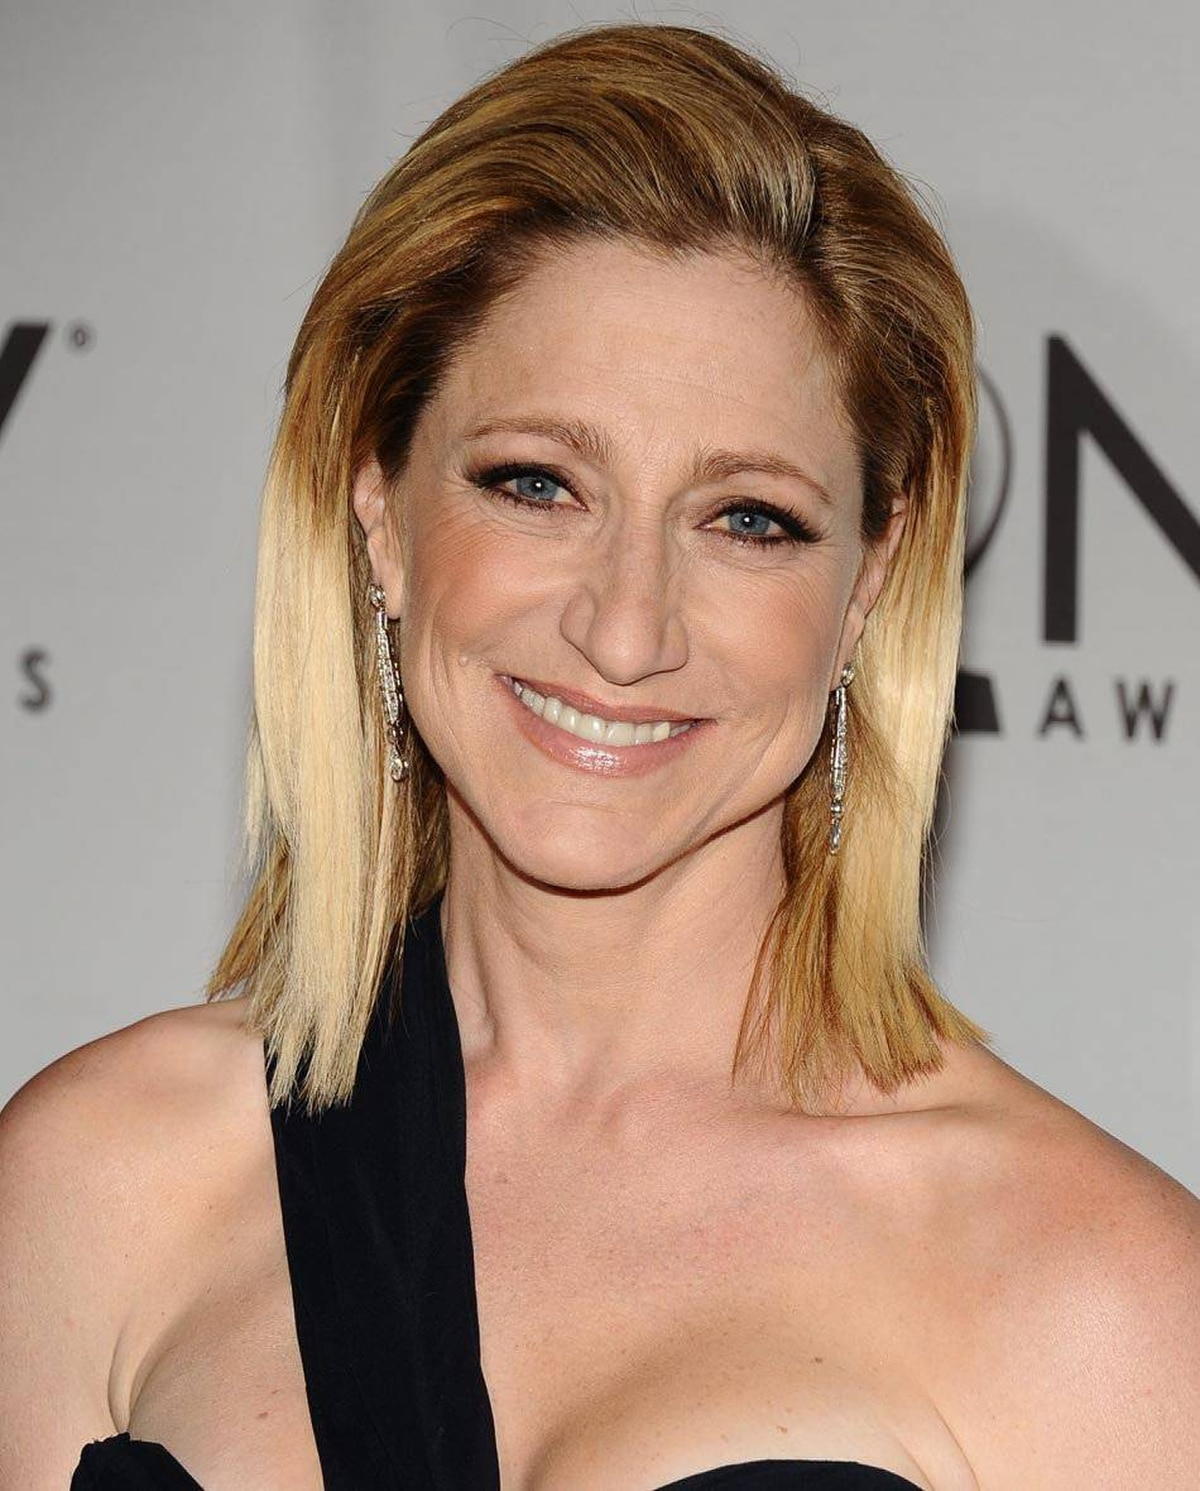 Edie Falco arrives at the 65th annual Tony Awards, Sunday, June 12, 2011 in New York.